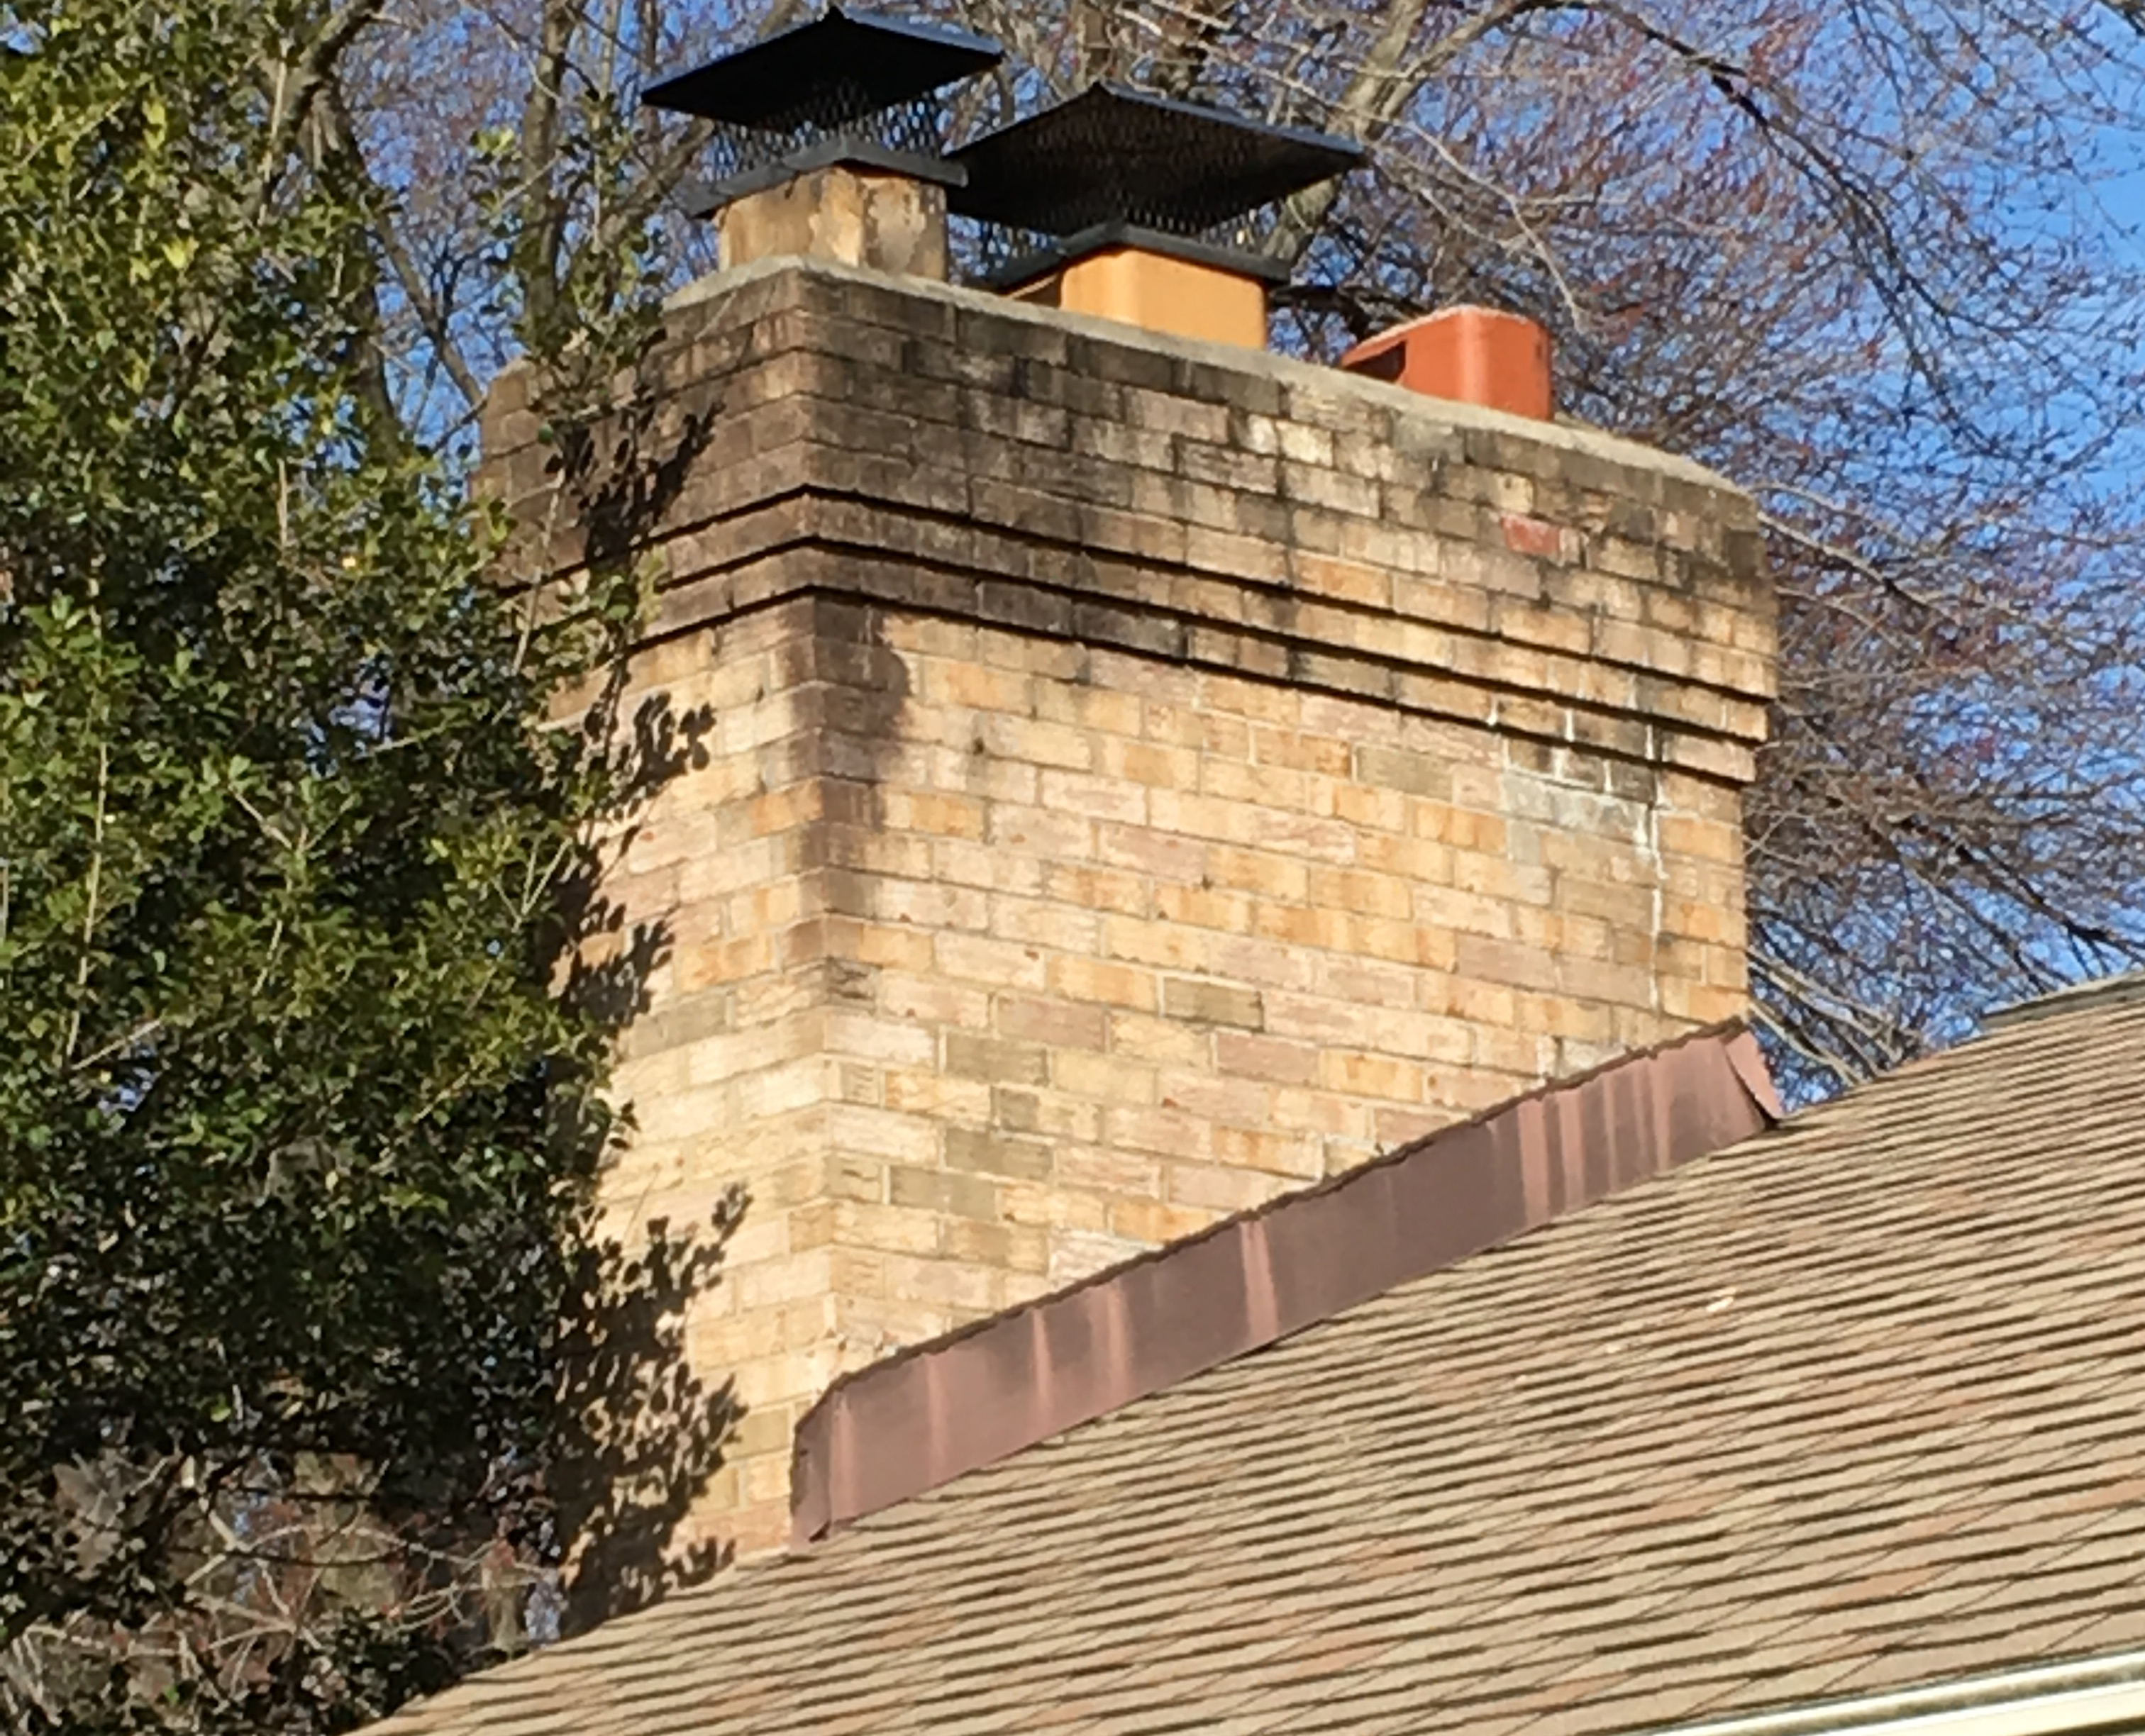 What S Causing Those Stains On The Chimney The Washington Post